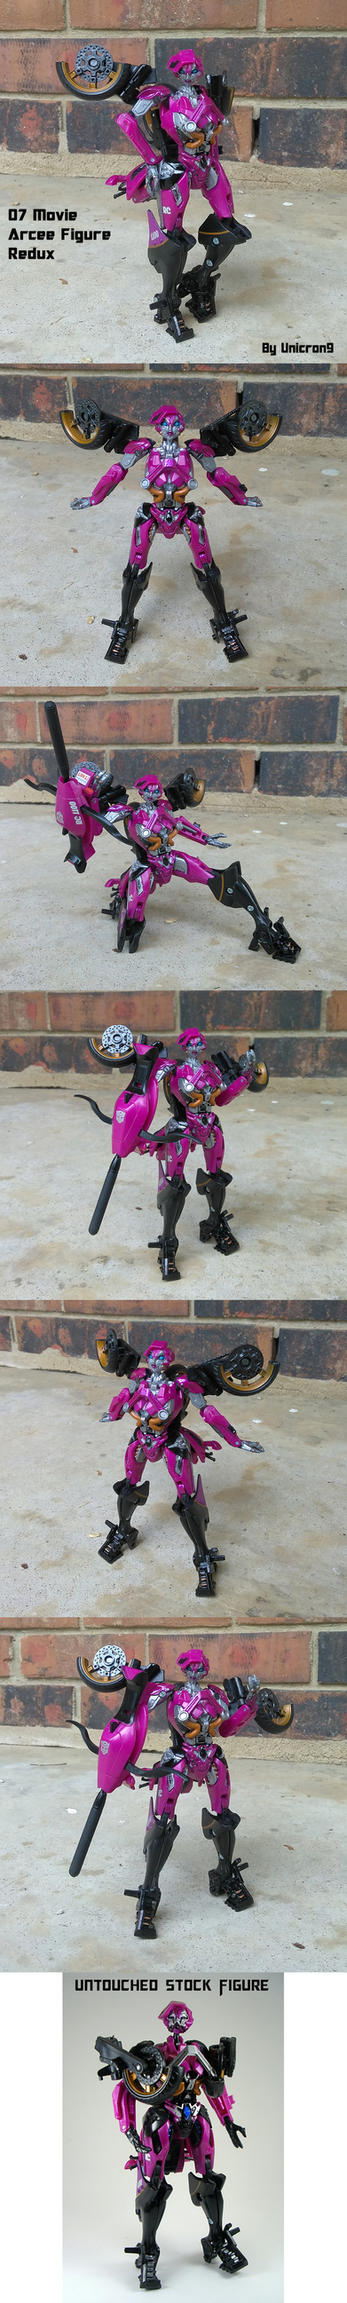 07 Arcee Movie Figure Redux by Unicron9